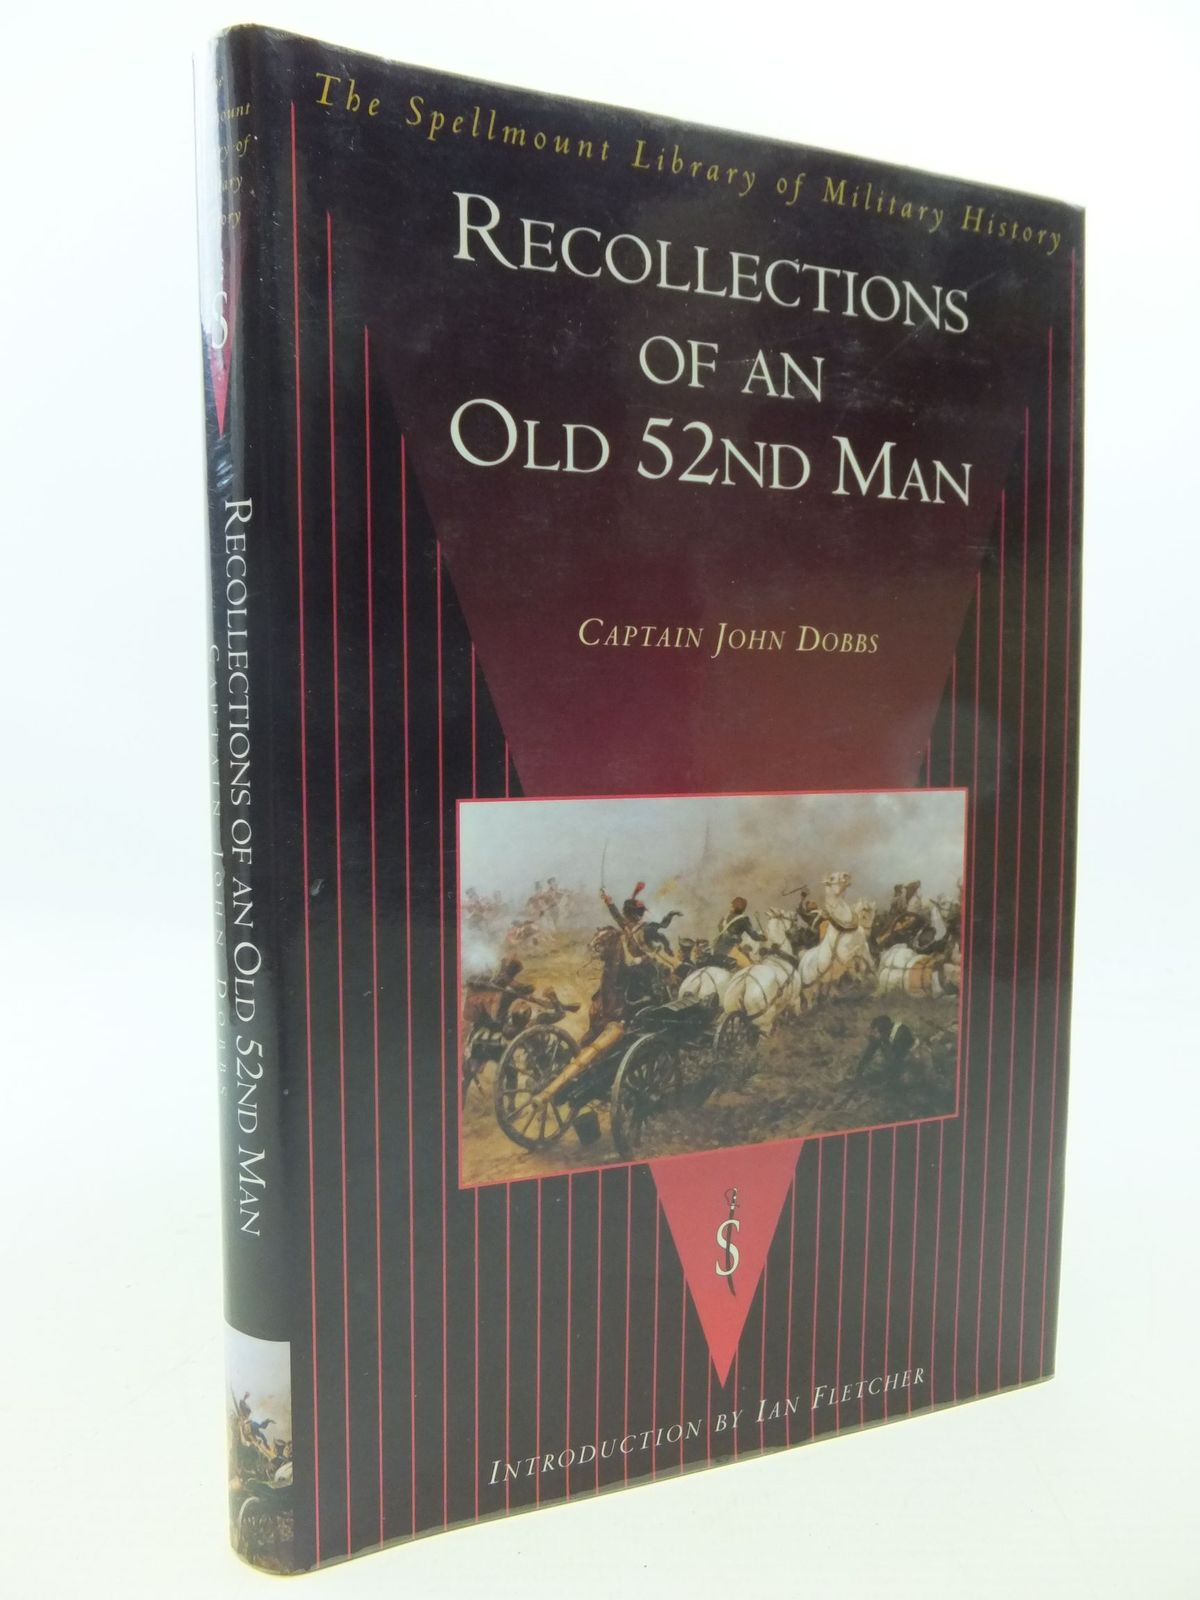 Photo of RECOLLECTIONS OF AN OLD 52ND MAN written by Dobbs, John published by Spellmount Ltd. (STOCK CODE: 2112694)  for sale by Stella & Rose's Books